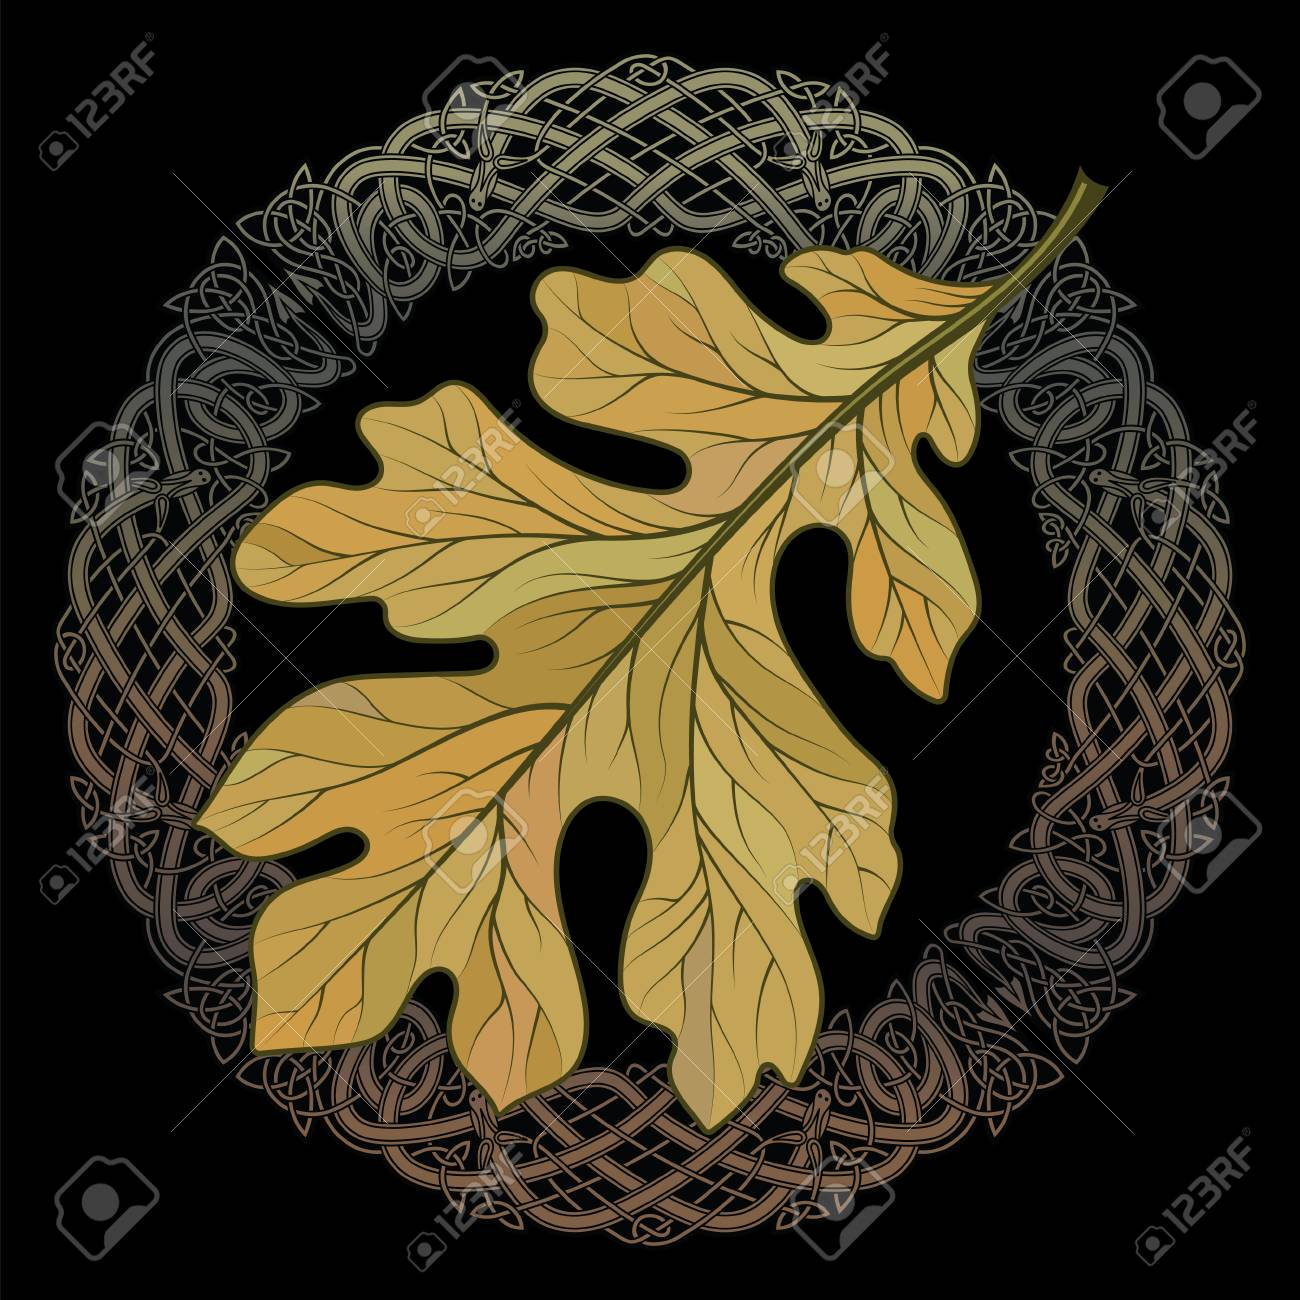 oak leaf in autumn coloring and celtic magic ornament royalty free cliparts vectors and stock illustration image 89605839 oak leaf in autumn coloring and celtic magic ornament